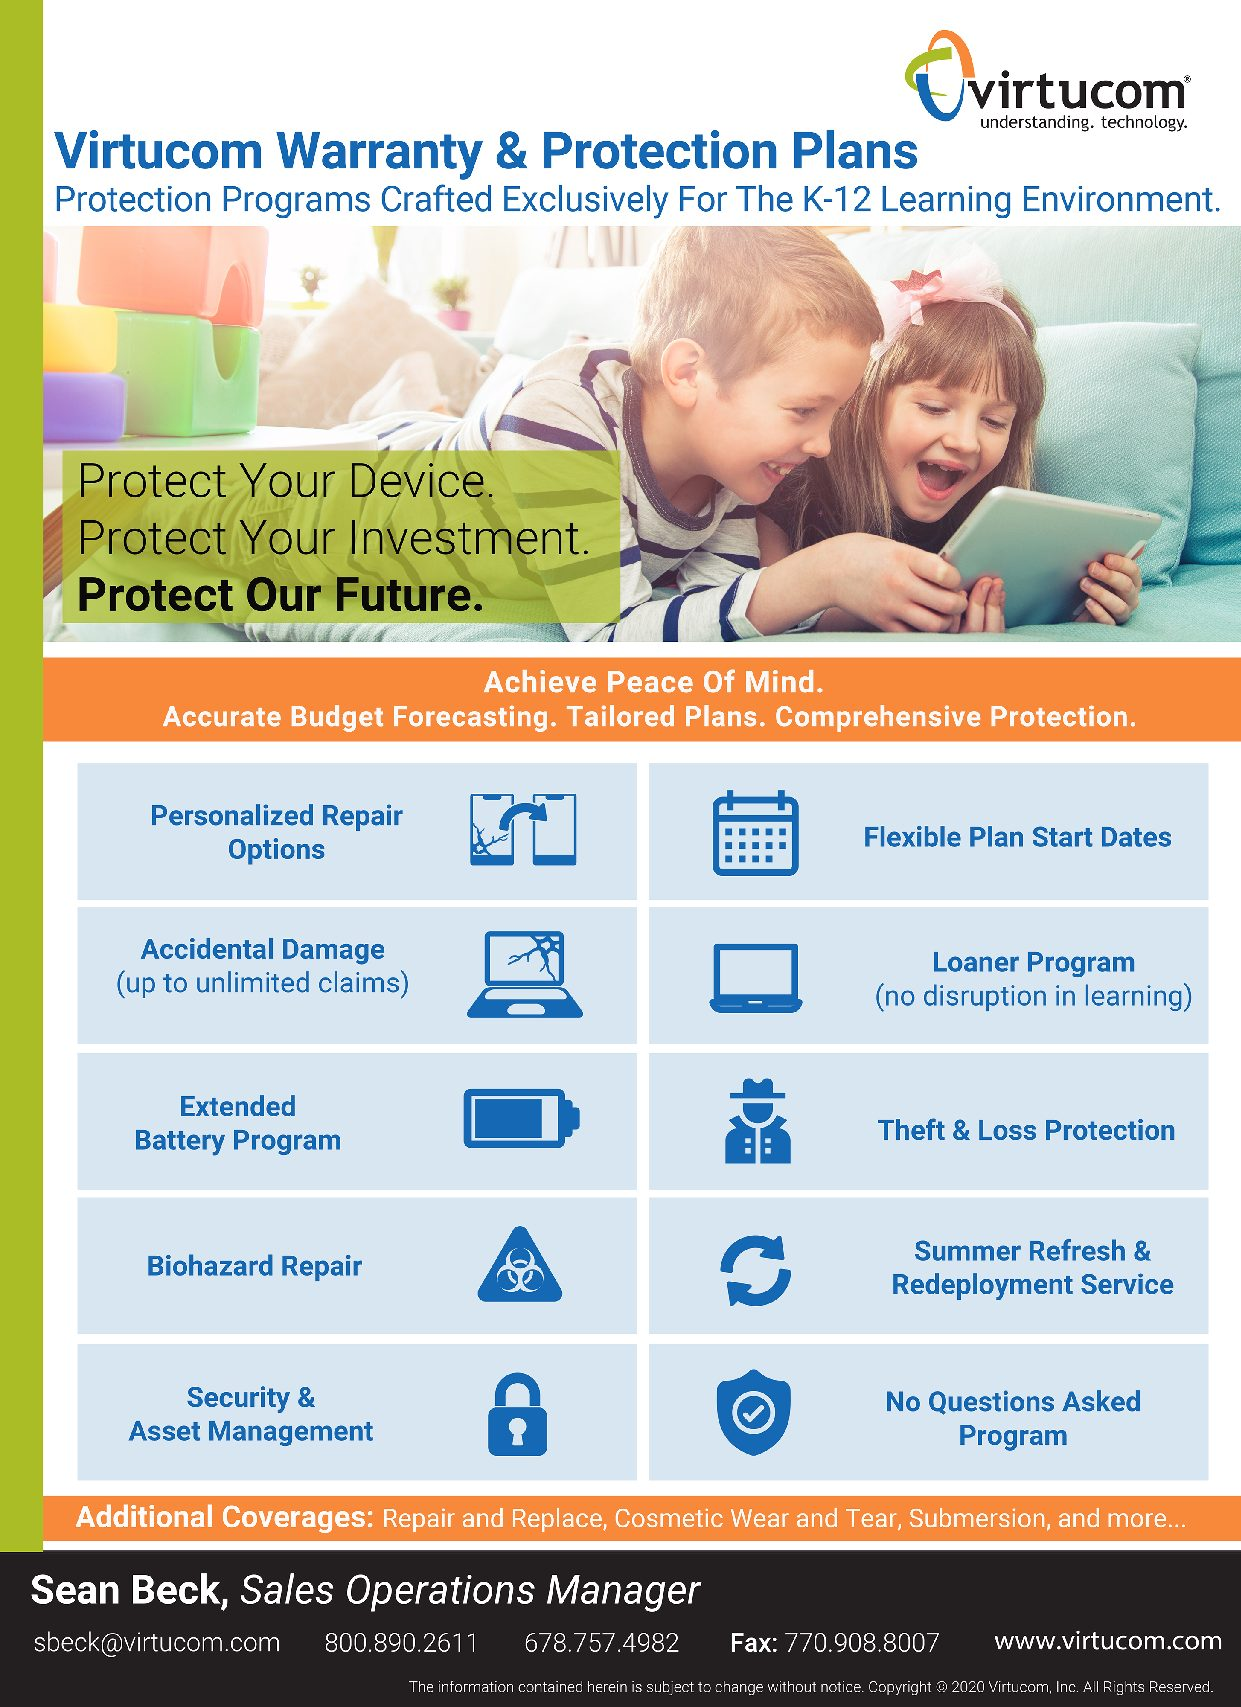 Virtucom Warranty and Protection Product Offering